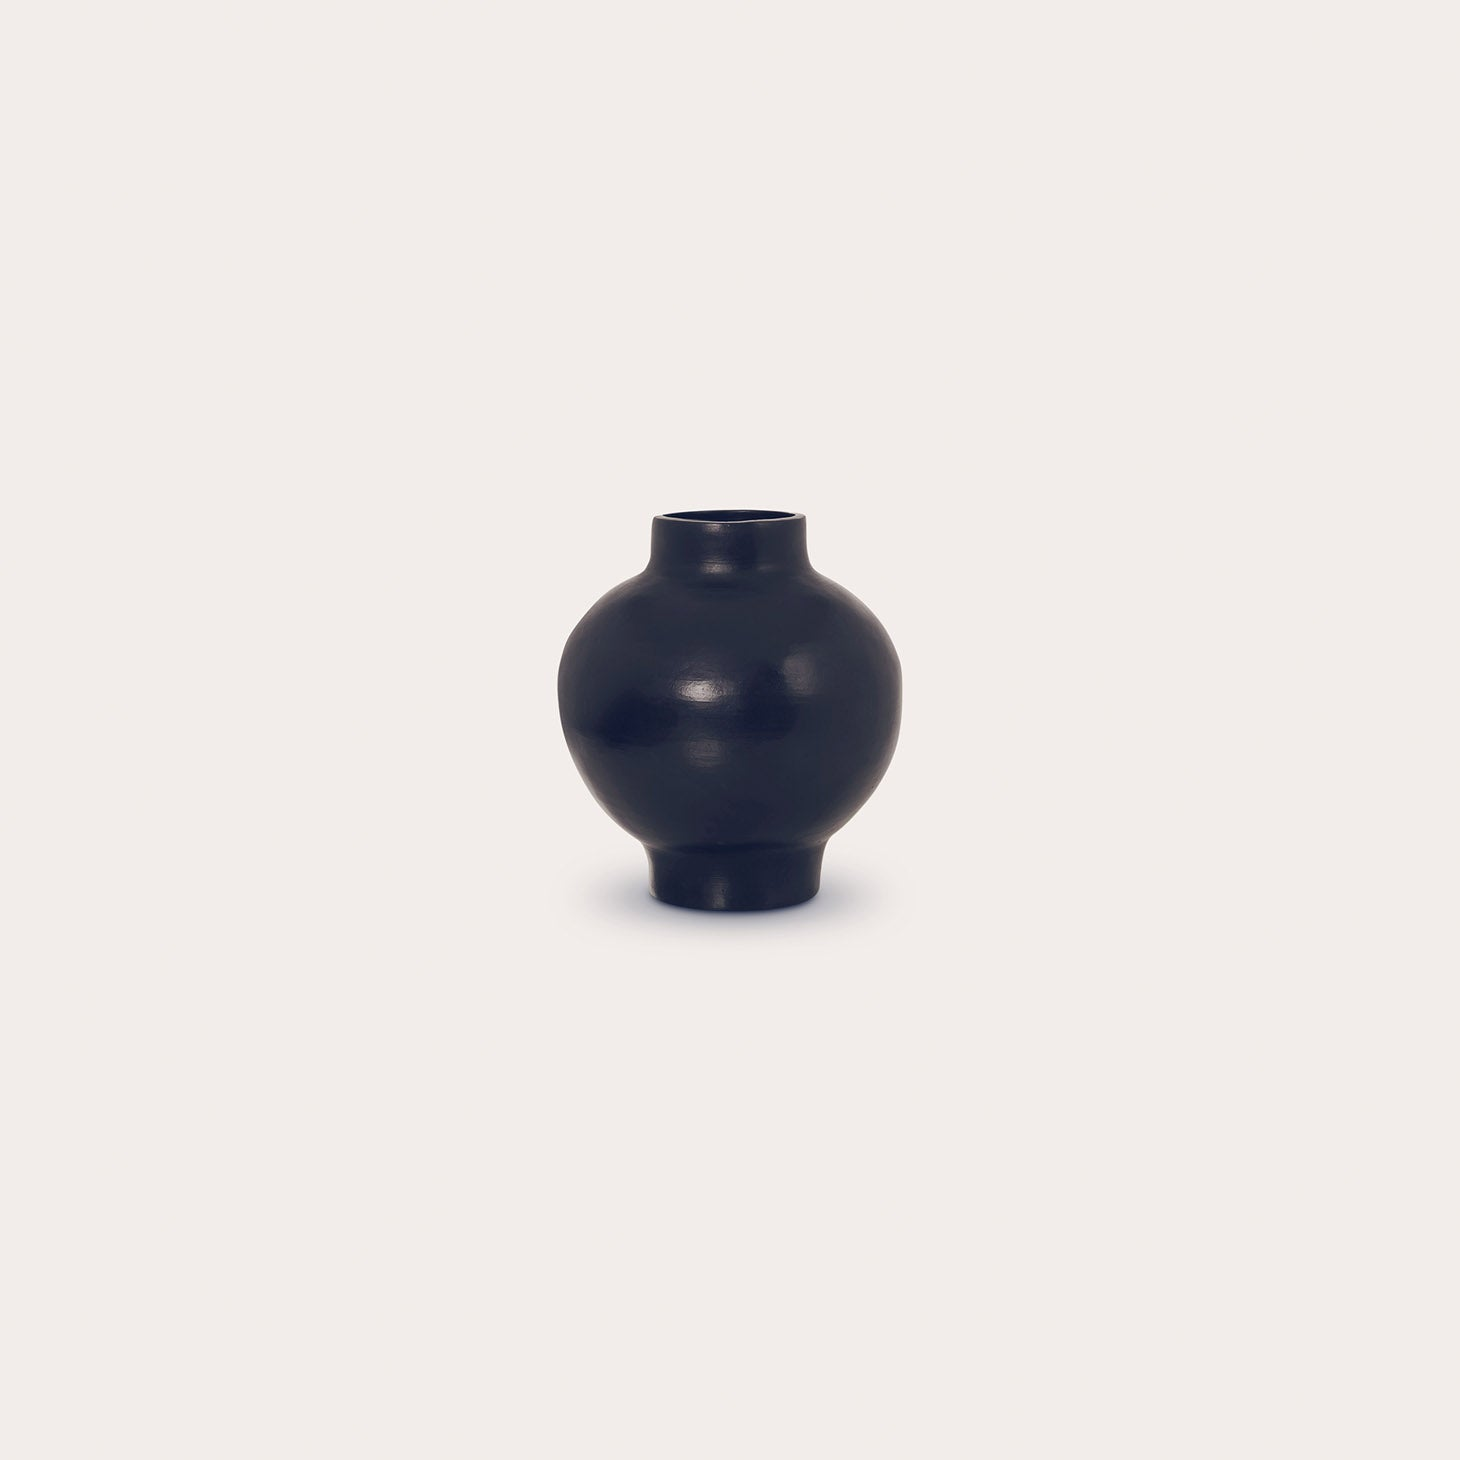 Barro Vase Accessories Sebastian Herkner Designer Furniture Sku: 803-100-10009